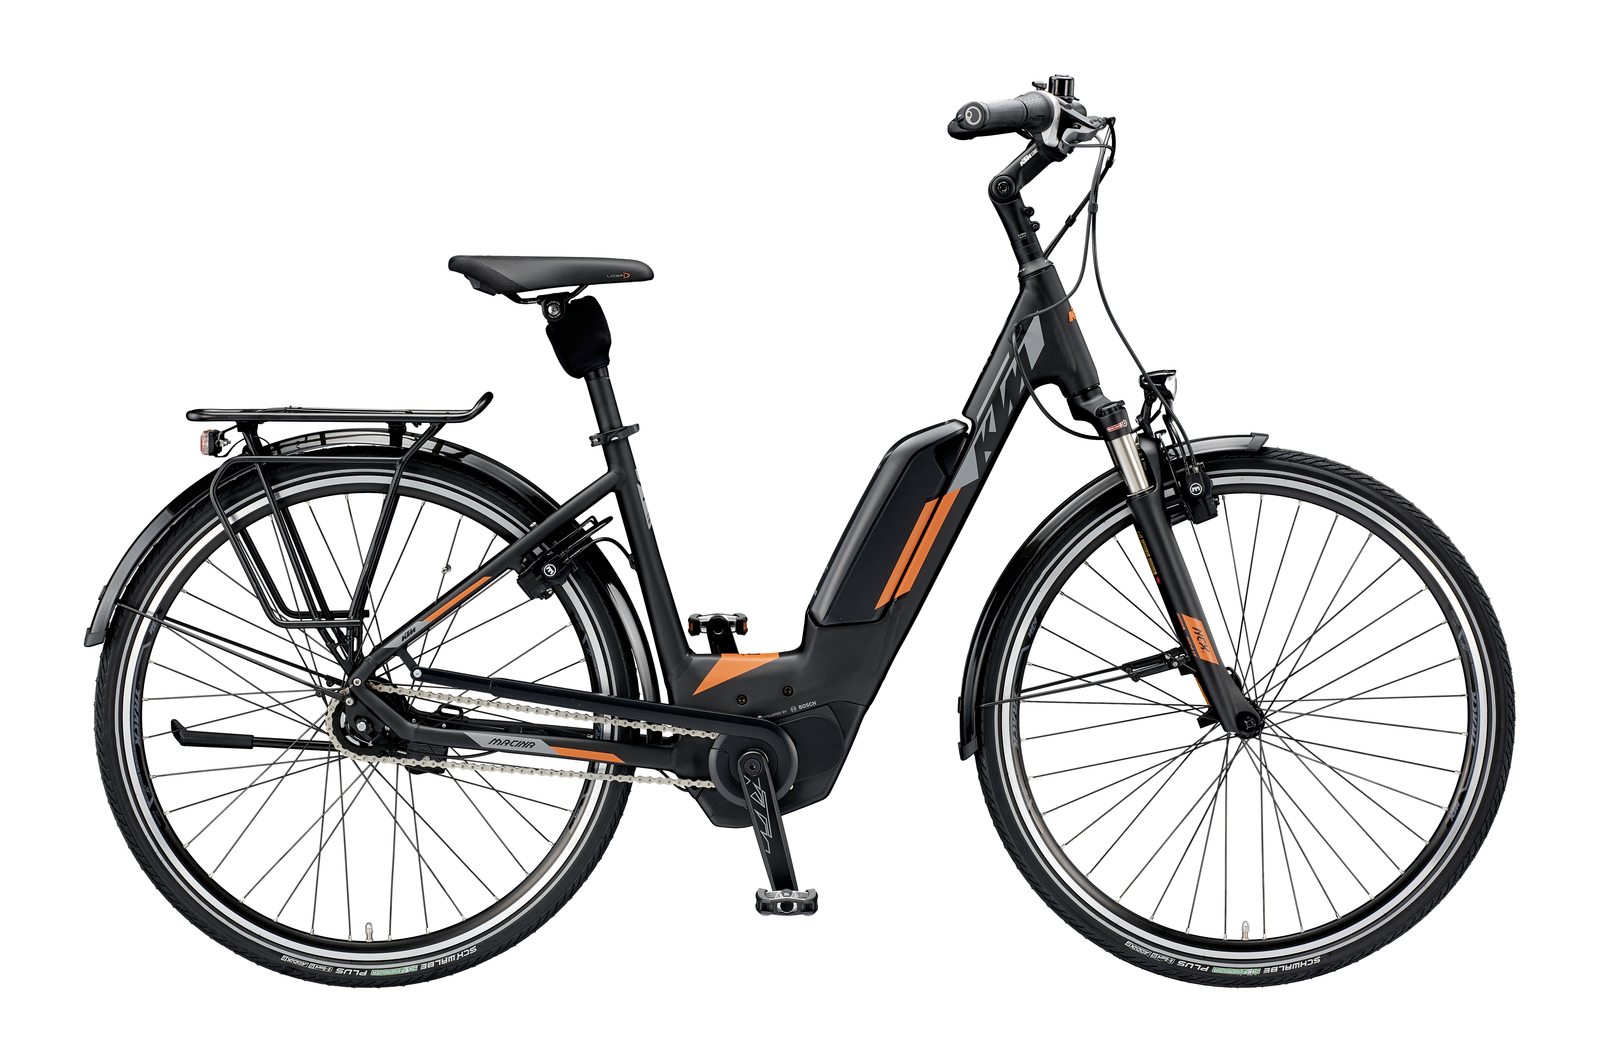 e bike geheimtipp ktm macina city hs 5 p5 modell 2019. Black Bedroom Furniture Sets. Home Design Ideas